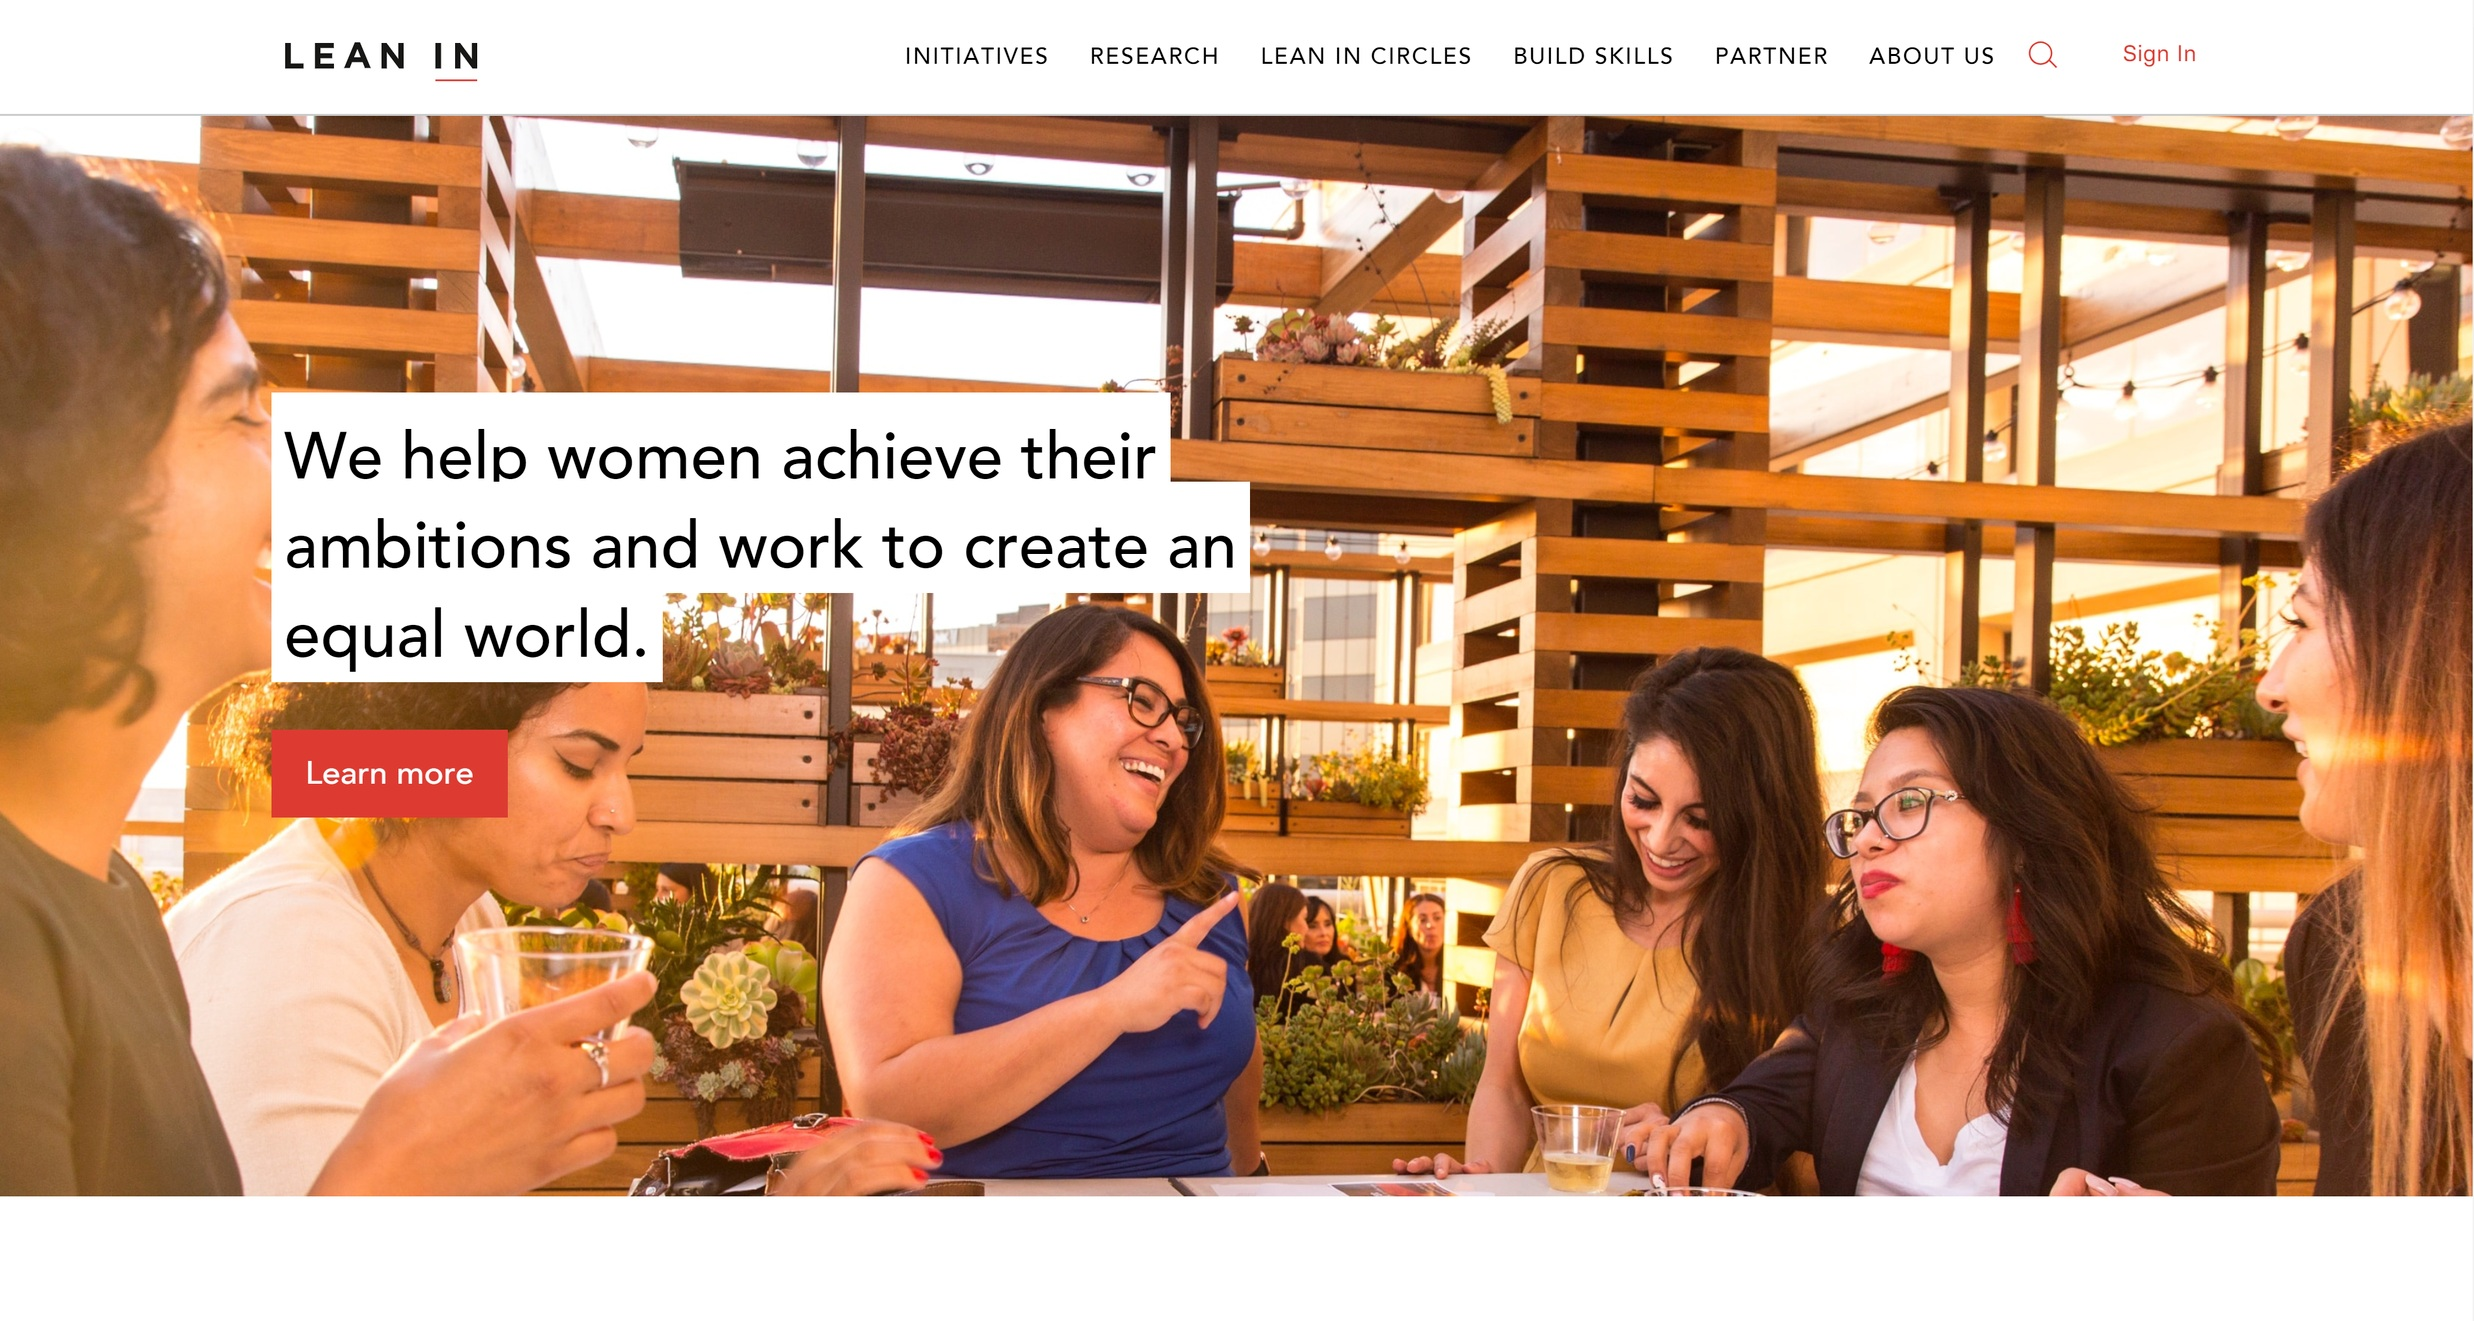 Lean In - Equality for women at work website